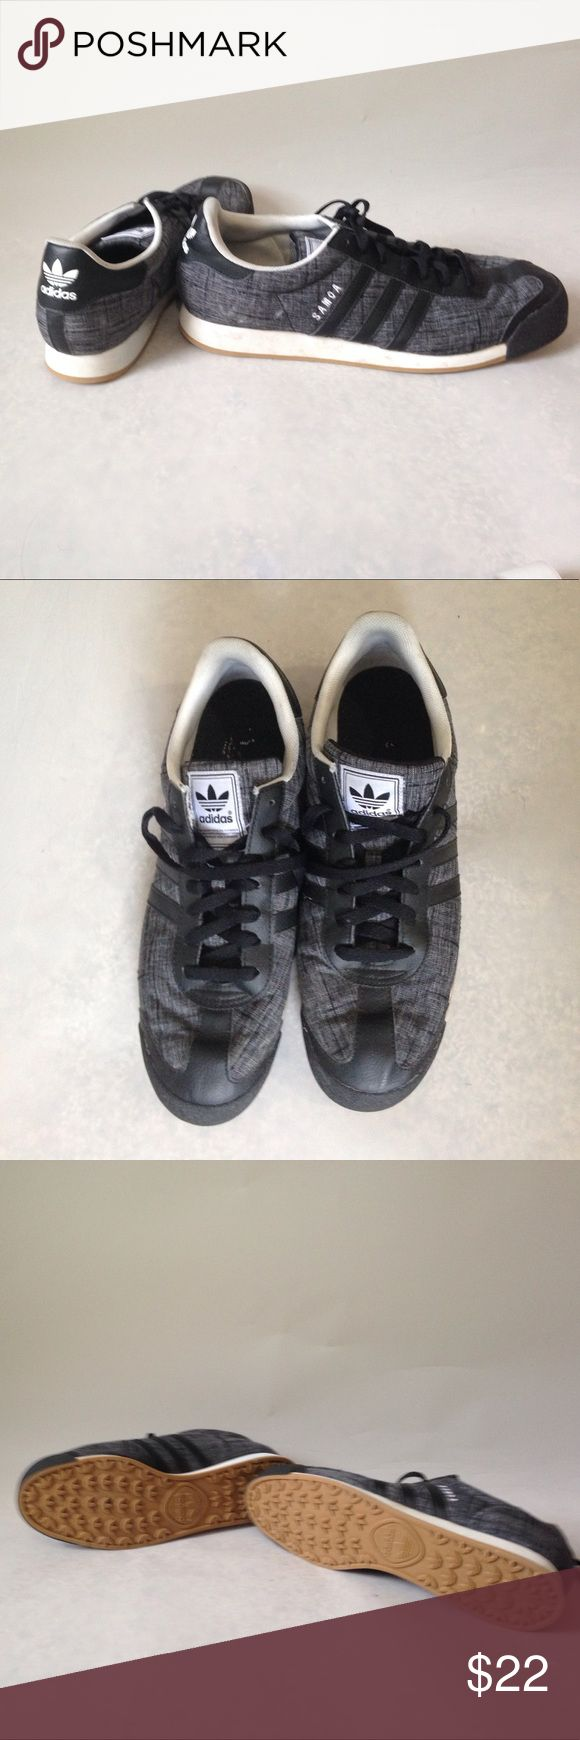 Adidas Soma Size 13 sneakers Adidas Soma Running shoes Size 13. Preowned and in Great condition. Make me an offer. adidas Shoes Athletic Shoes